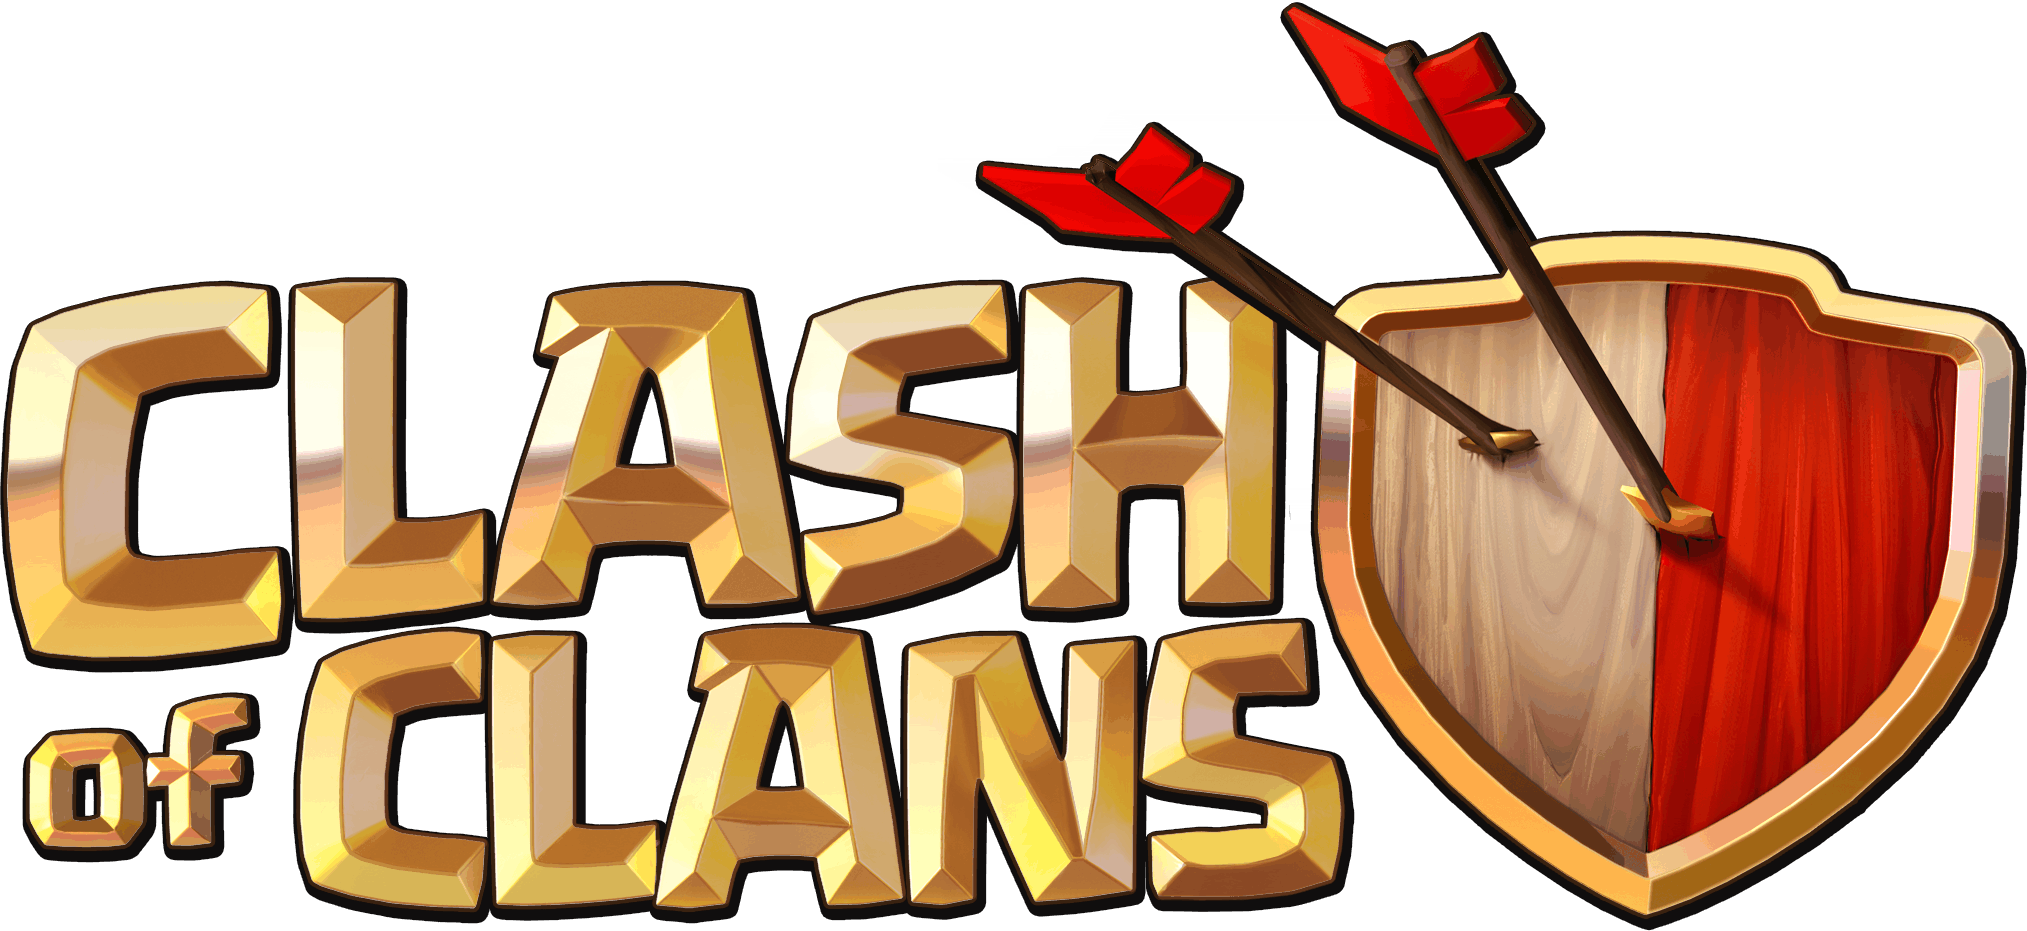 Clash Of Clans HD PNG - 119504